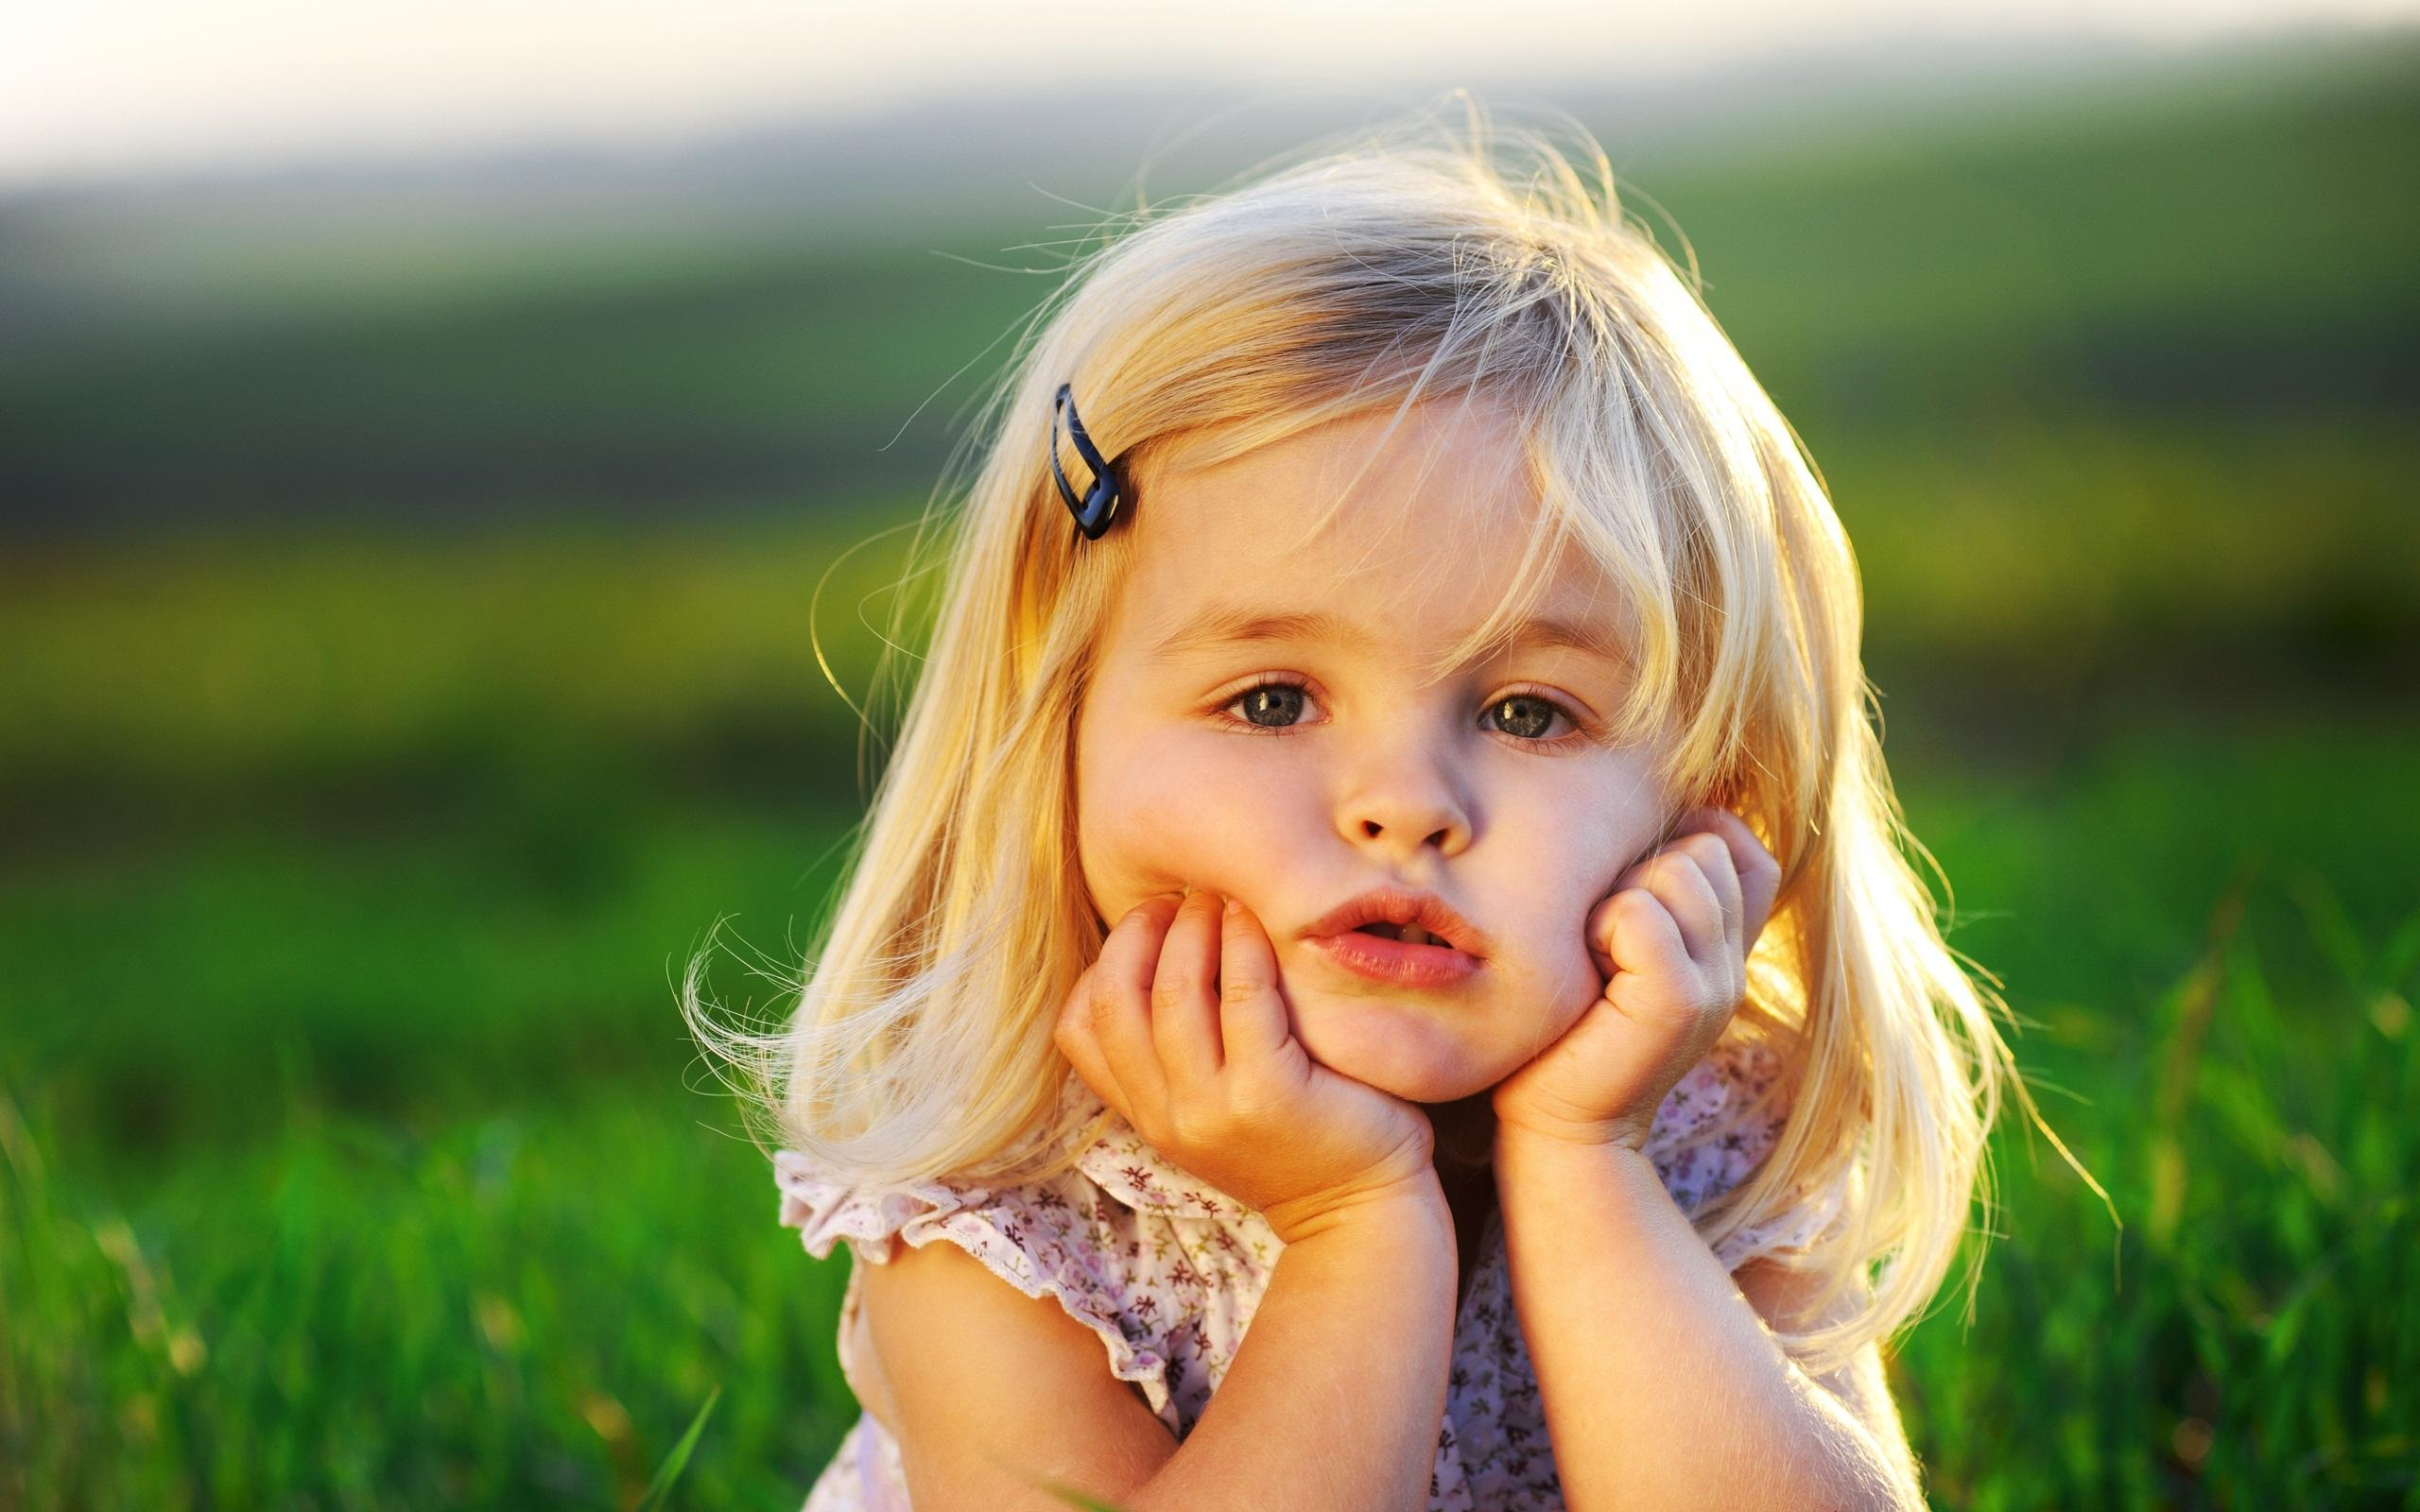 Cute Little Baby Girl Wallpaper Wallpaper